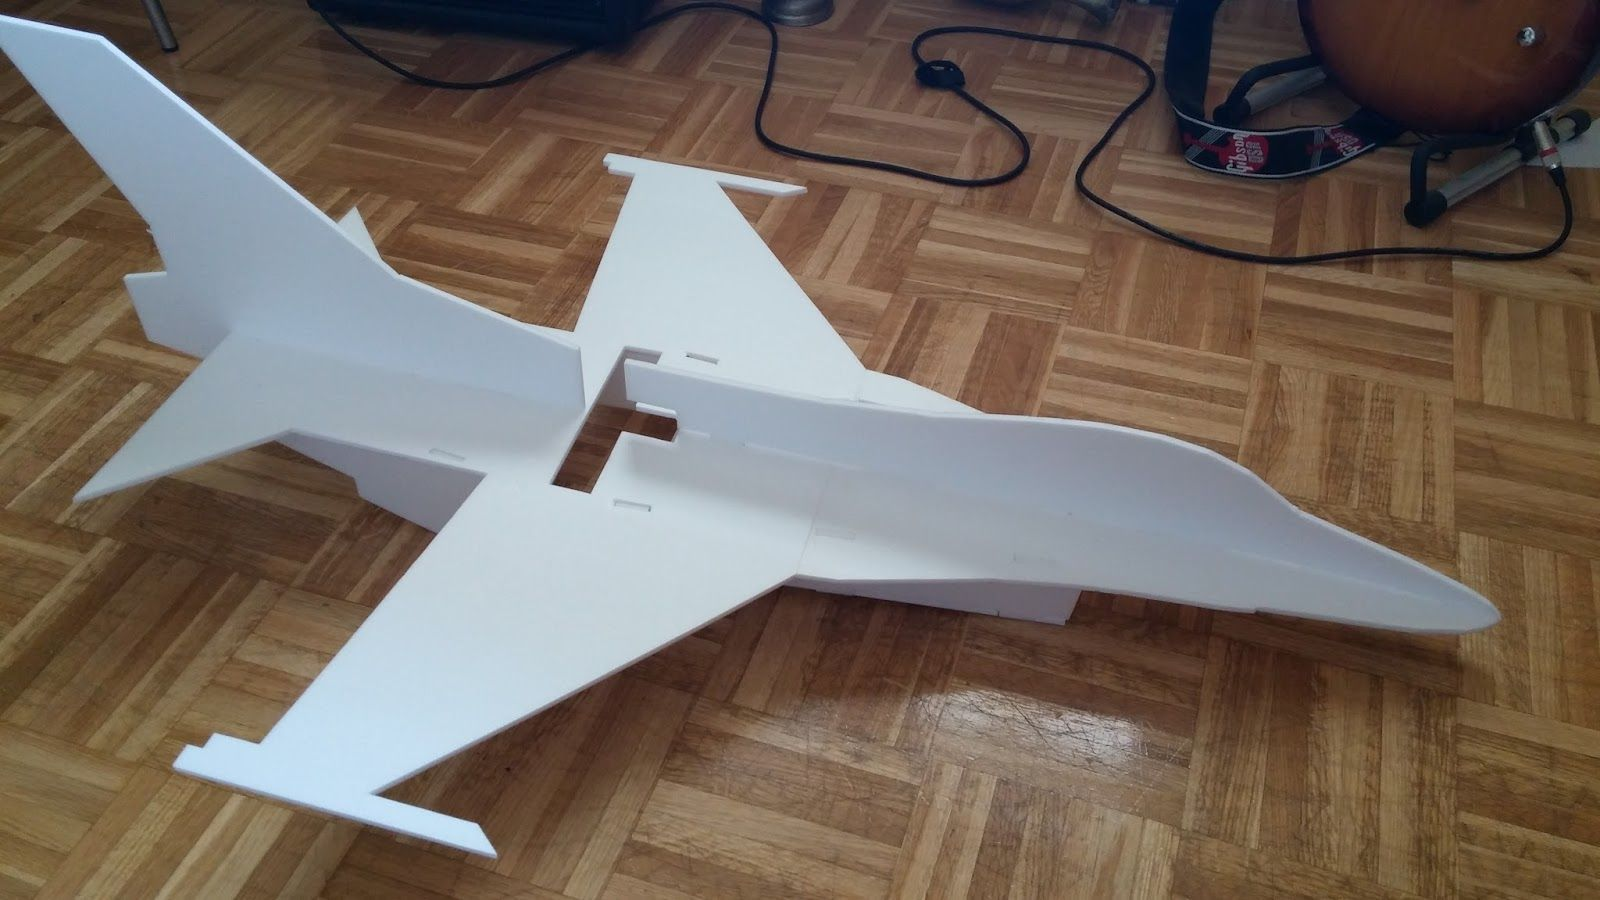 How to Easily Build a Remote Controlled Airplane mODELISMO